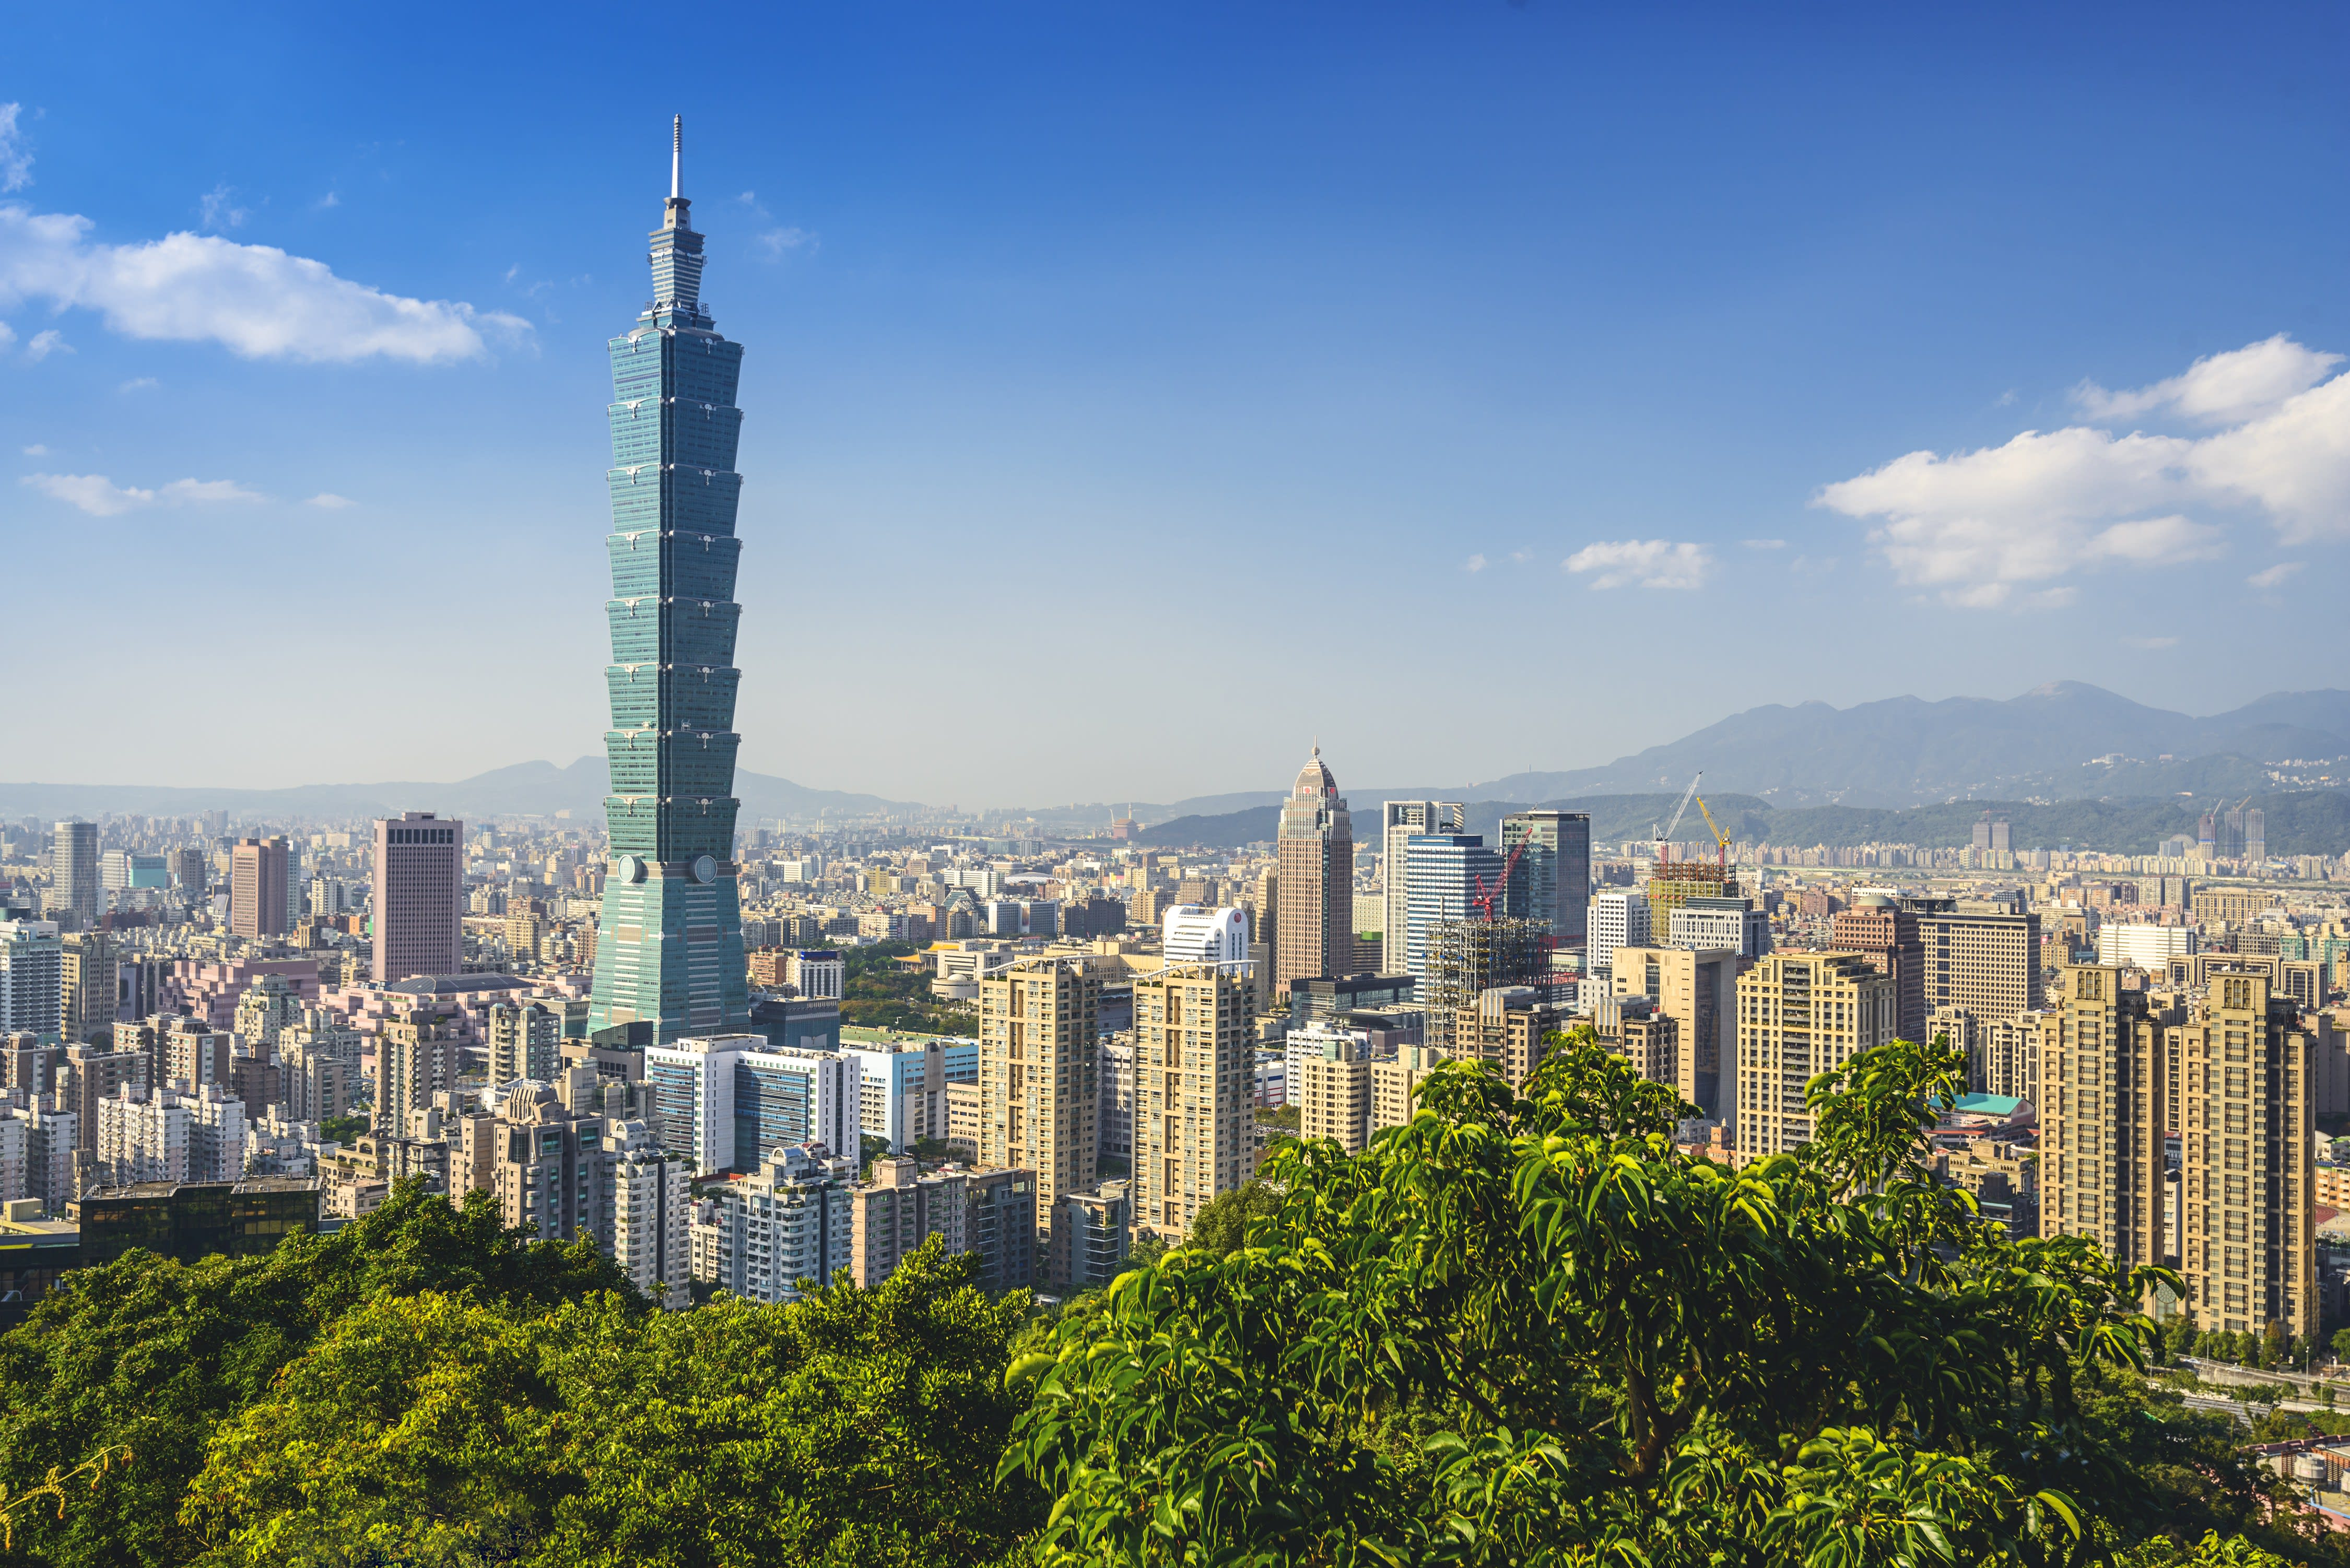 Discover the capital's landmarks like Taipei 101, one of the world's largest buildings